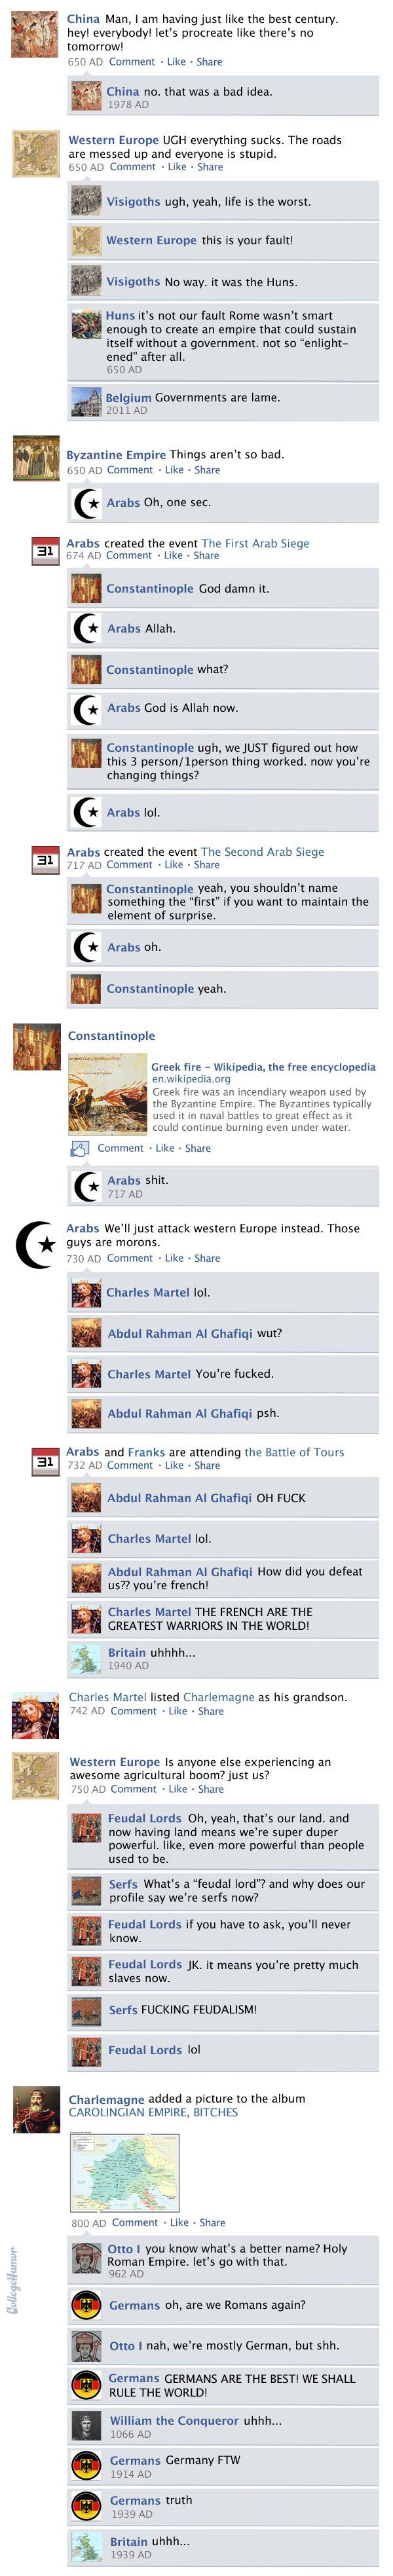 Facebook News Feed History of the World part 5